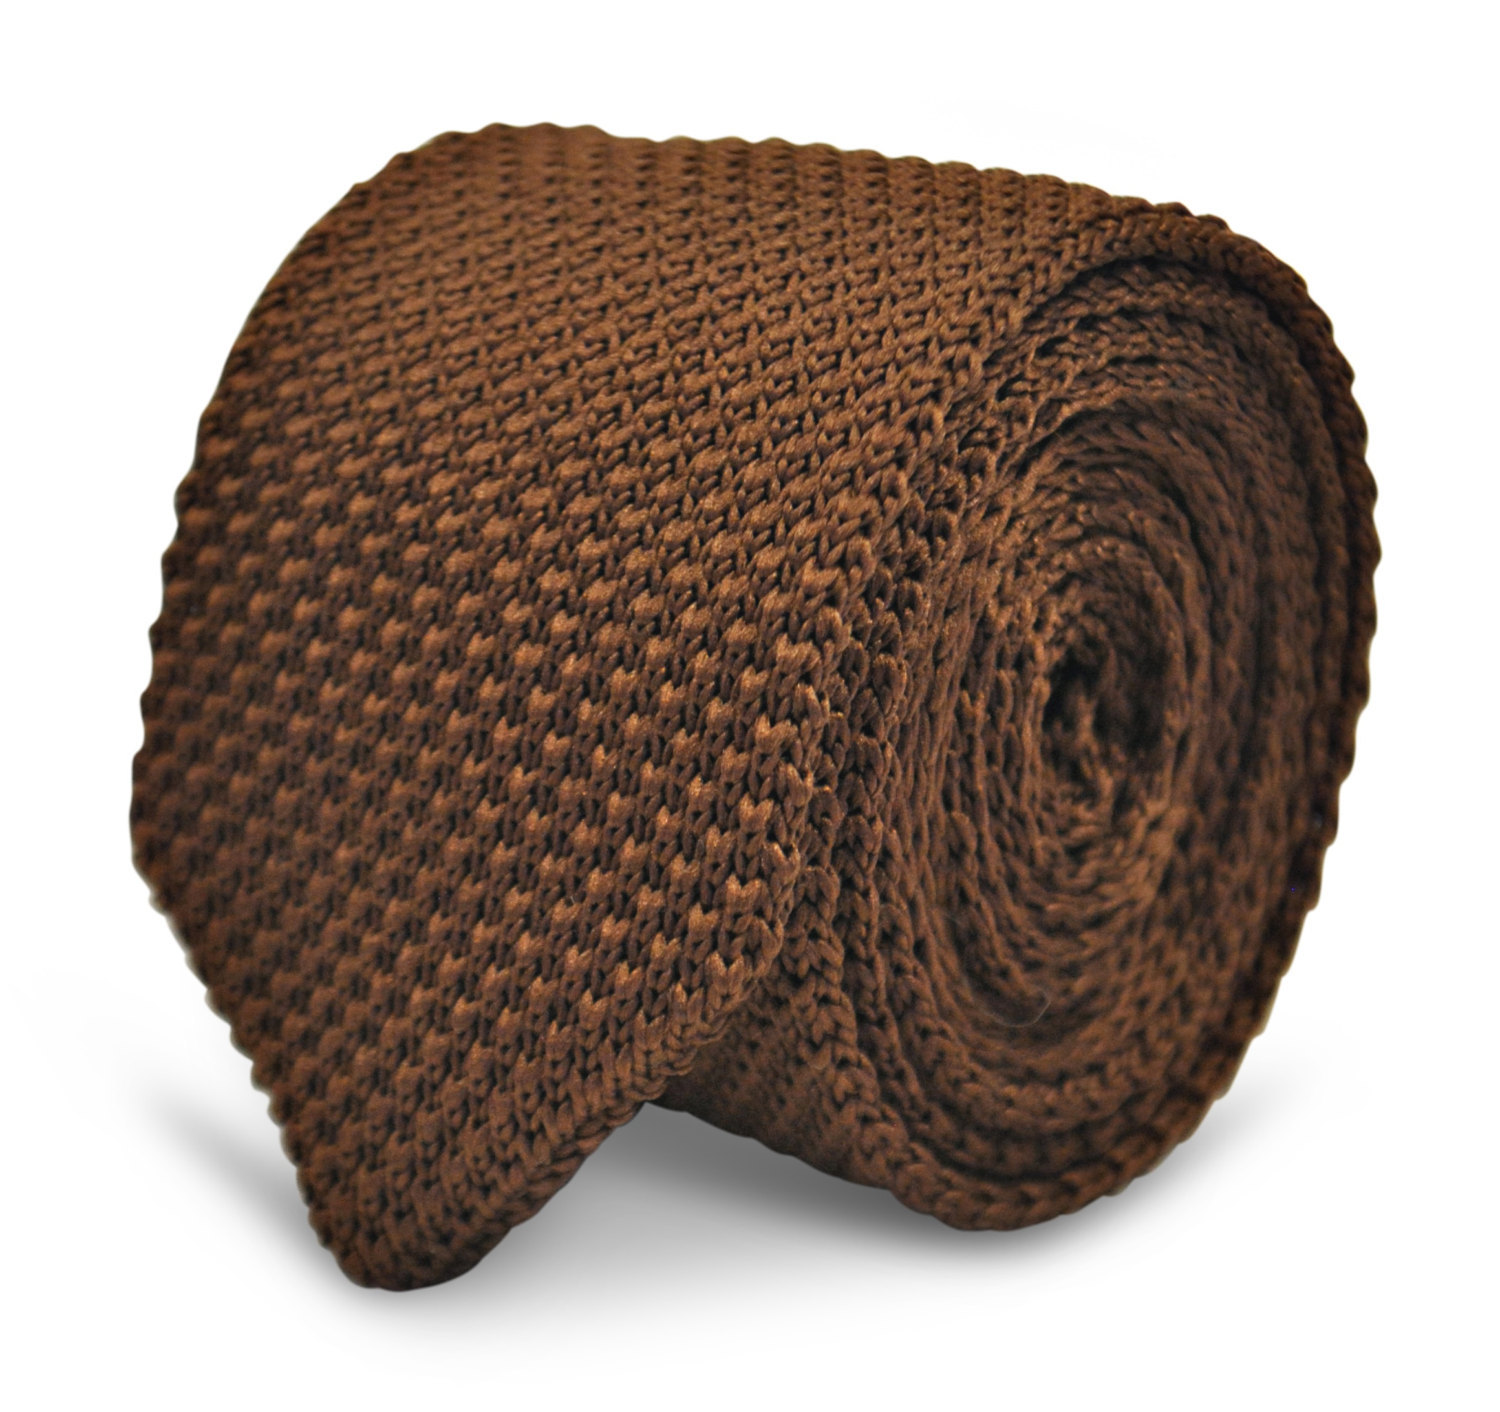 chocolate brown skinny knitted wool tie with pointed end by Frederick Thomas FT2